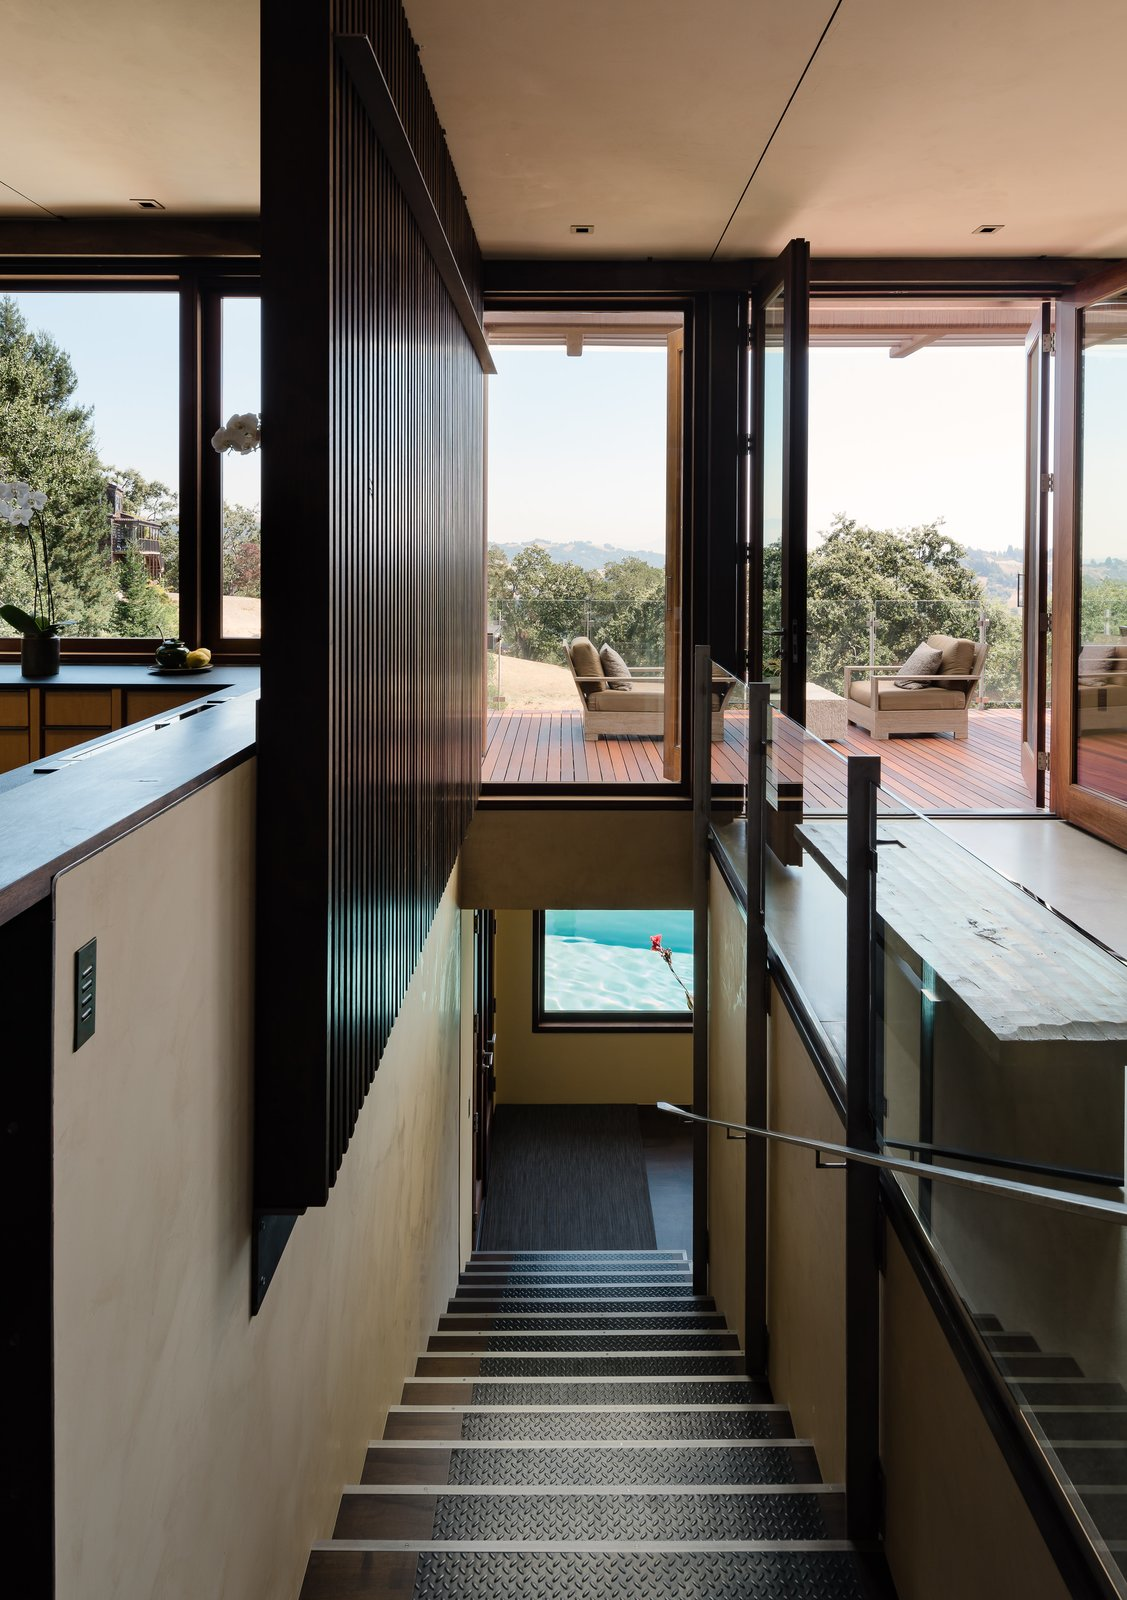 Staircase, Metal, Wood, and Metal Stairs provide a smooth transition to the lower level.  Staircase Wood Metal Metal Photos from Own Award-Winning Architect Greg Faulkner's Home For $4.9M